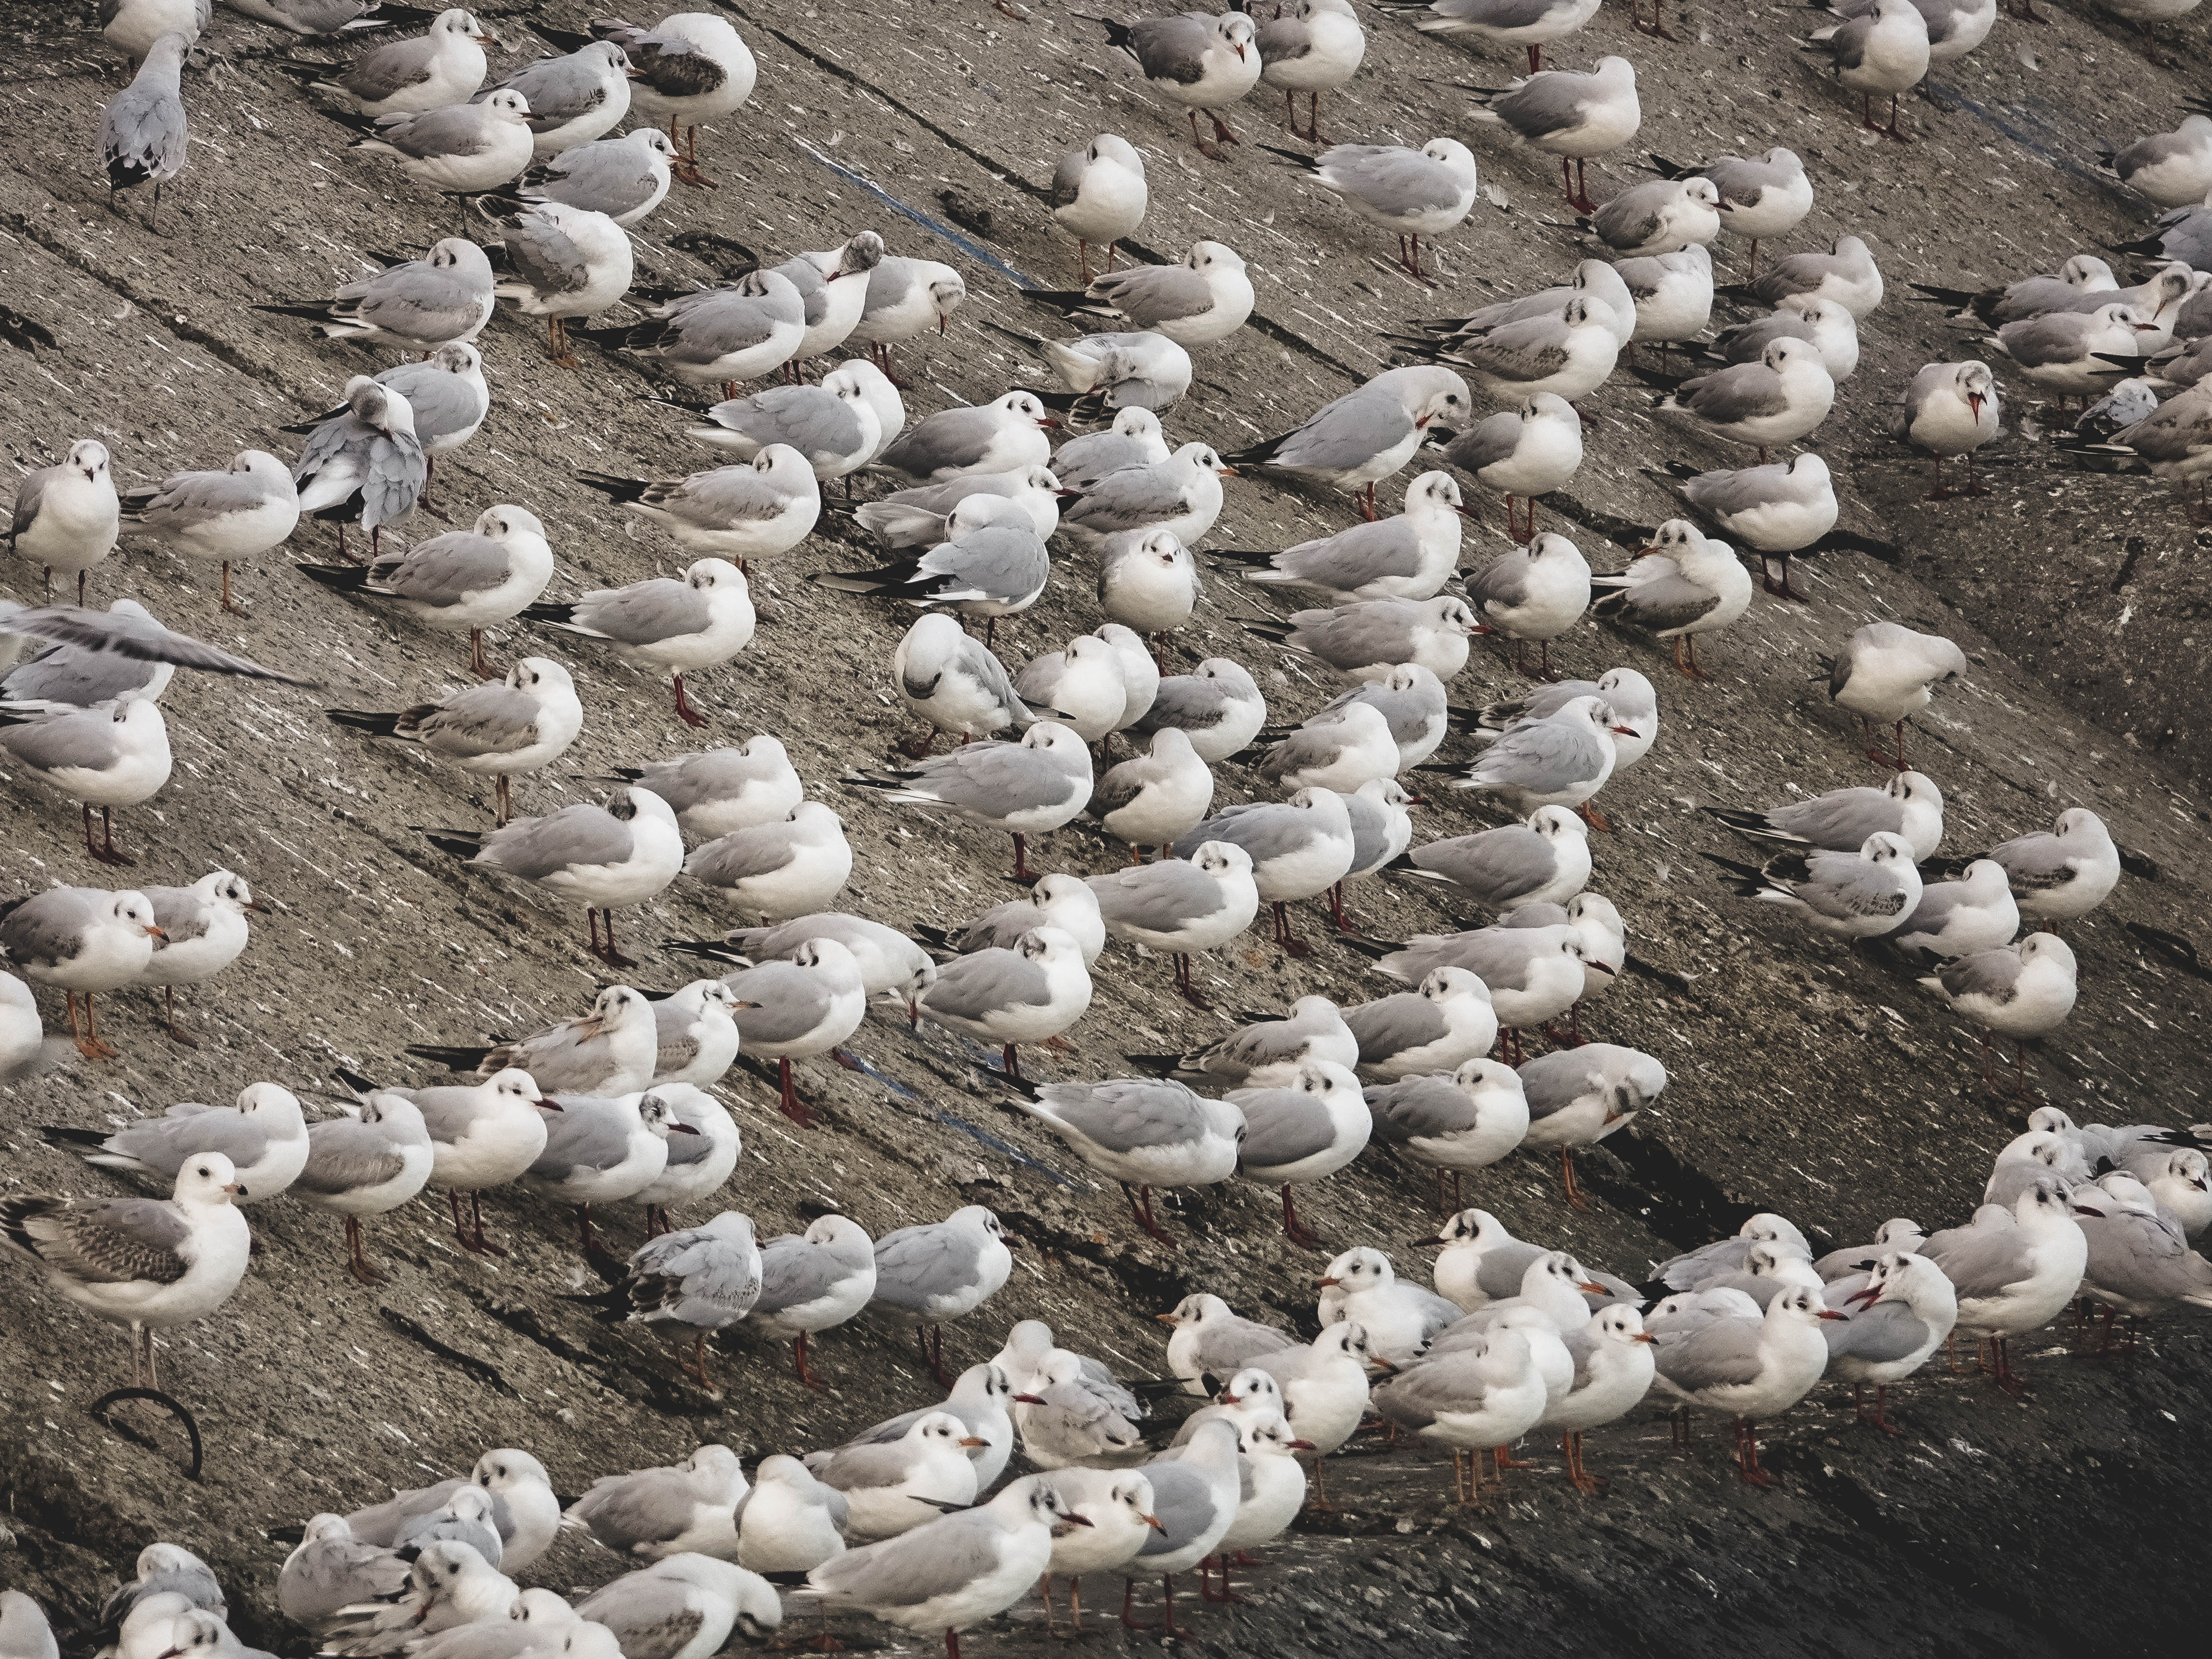 flock of white-and-gray birds